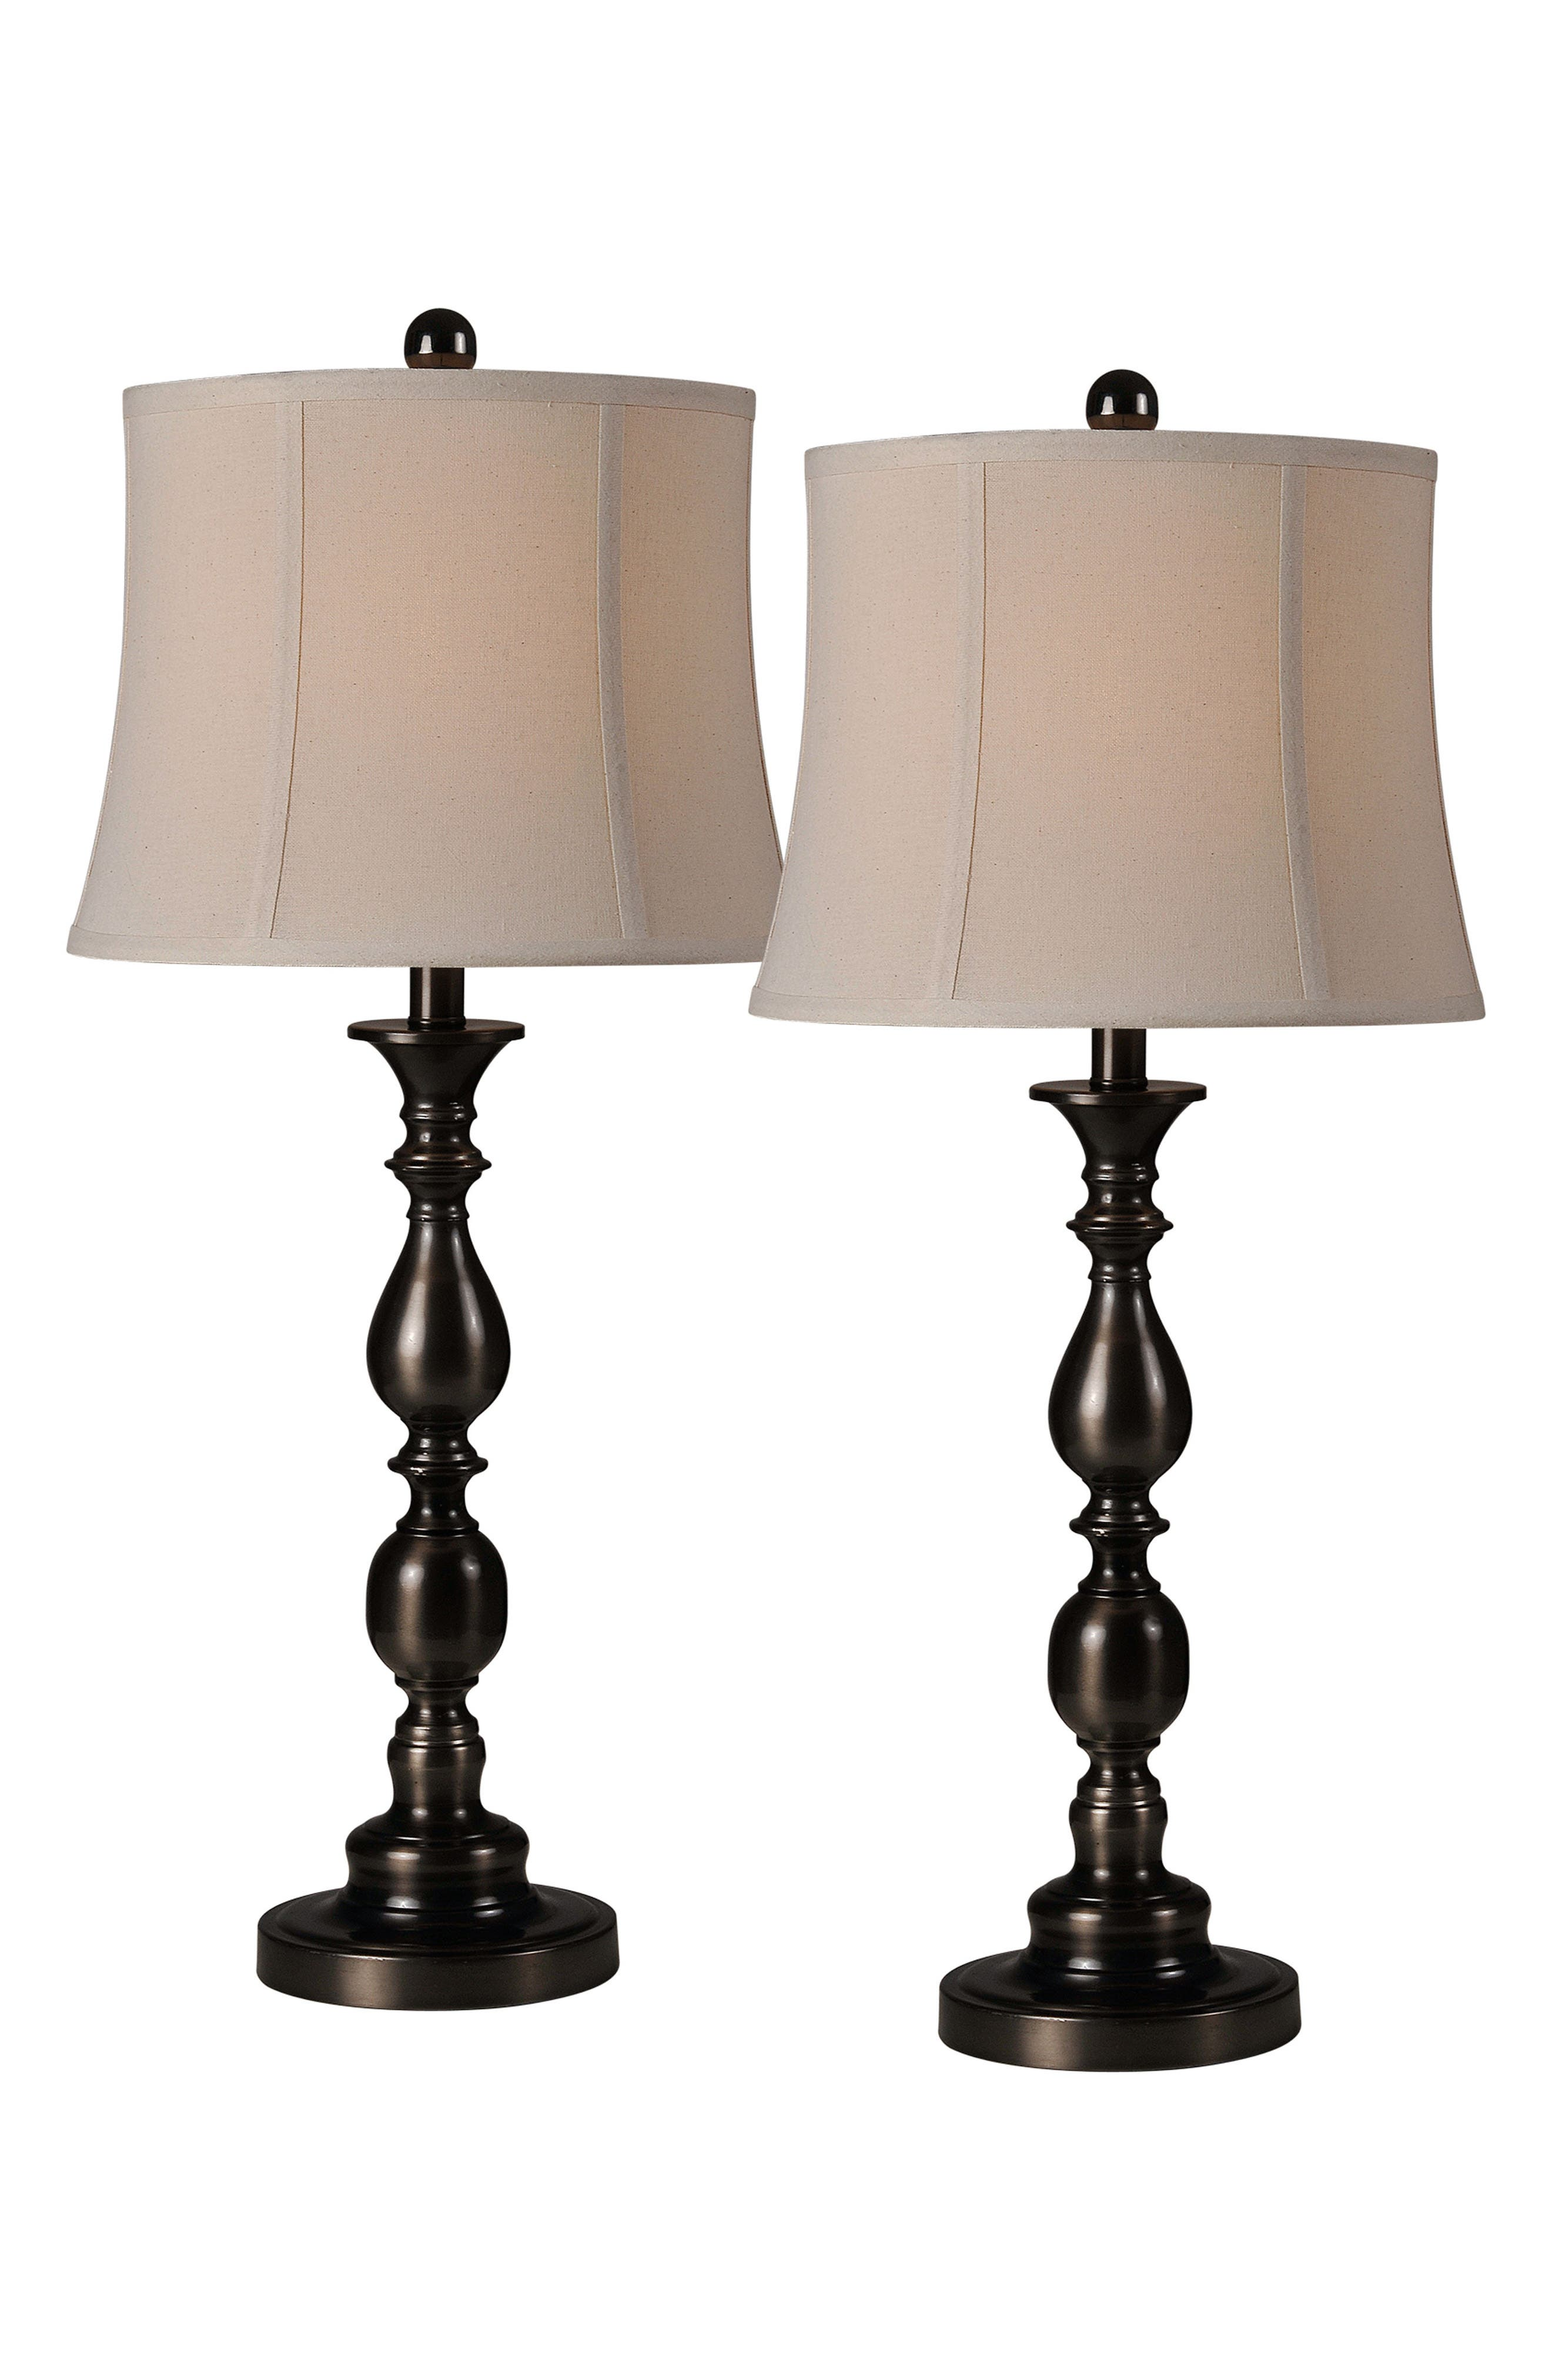 Alternate Image 1 Selected - Renwil Scala Set of 2 Table Lamps